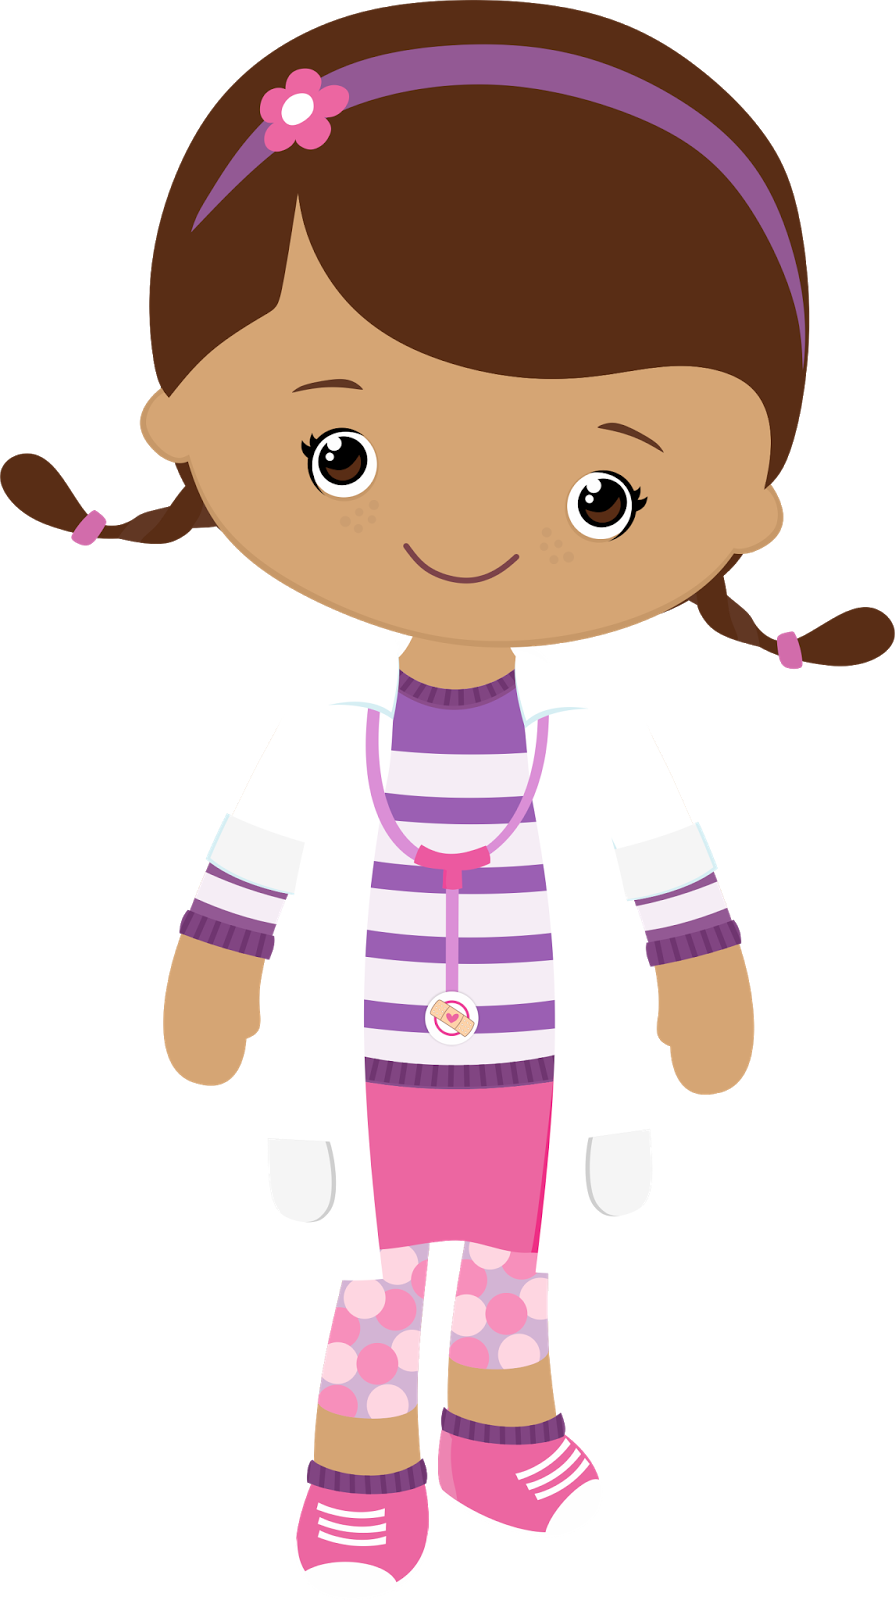 Doc mcstuffins clipart free vector royalty free library Doc McStuffins Clipart. | Oh My Fiesta! in english vector royalty free library